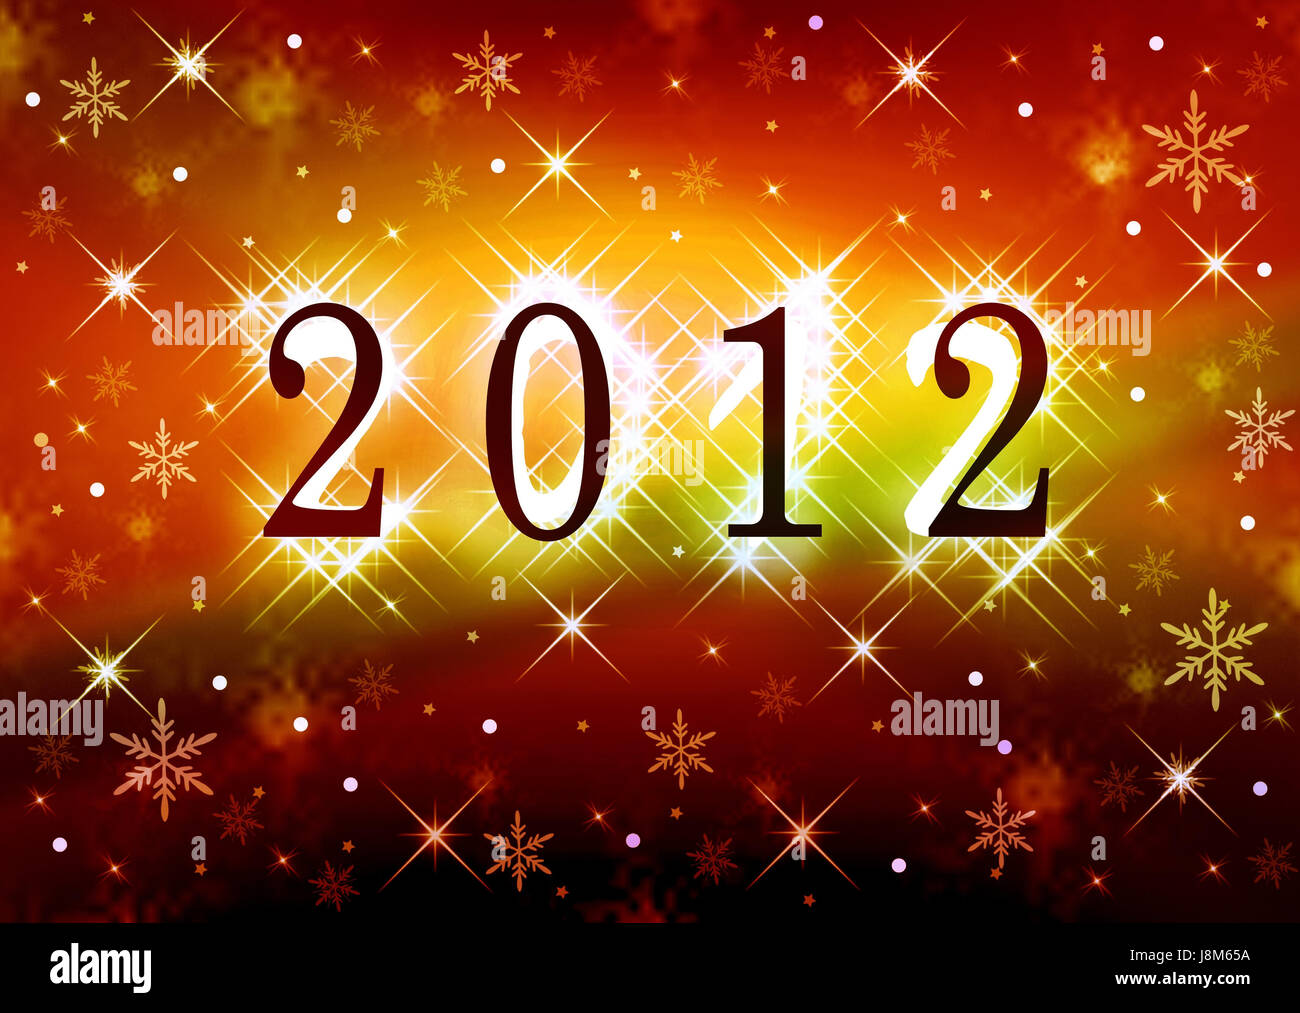 magical card new year wishes desires stars asterisks shine shines